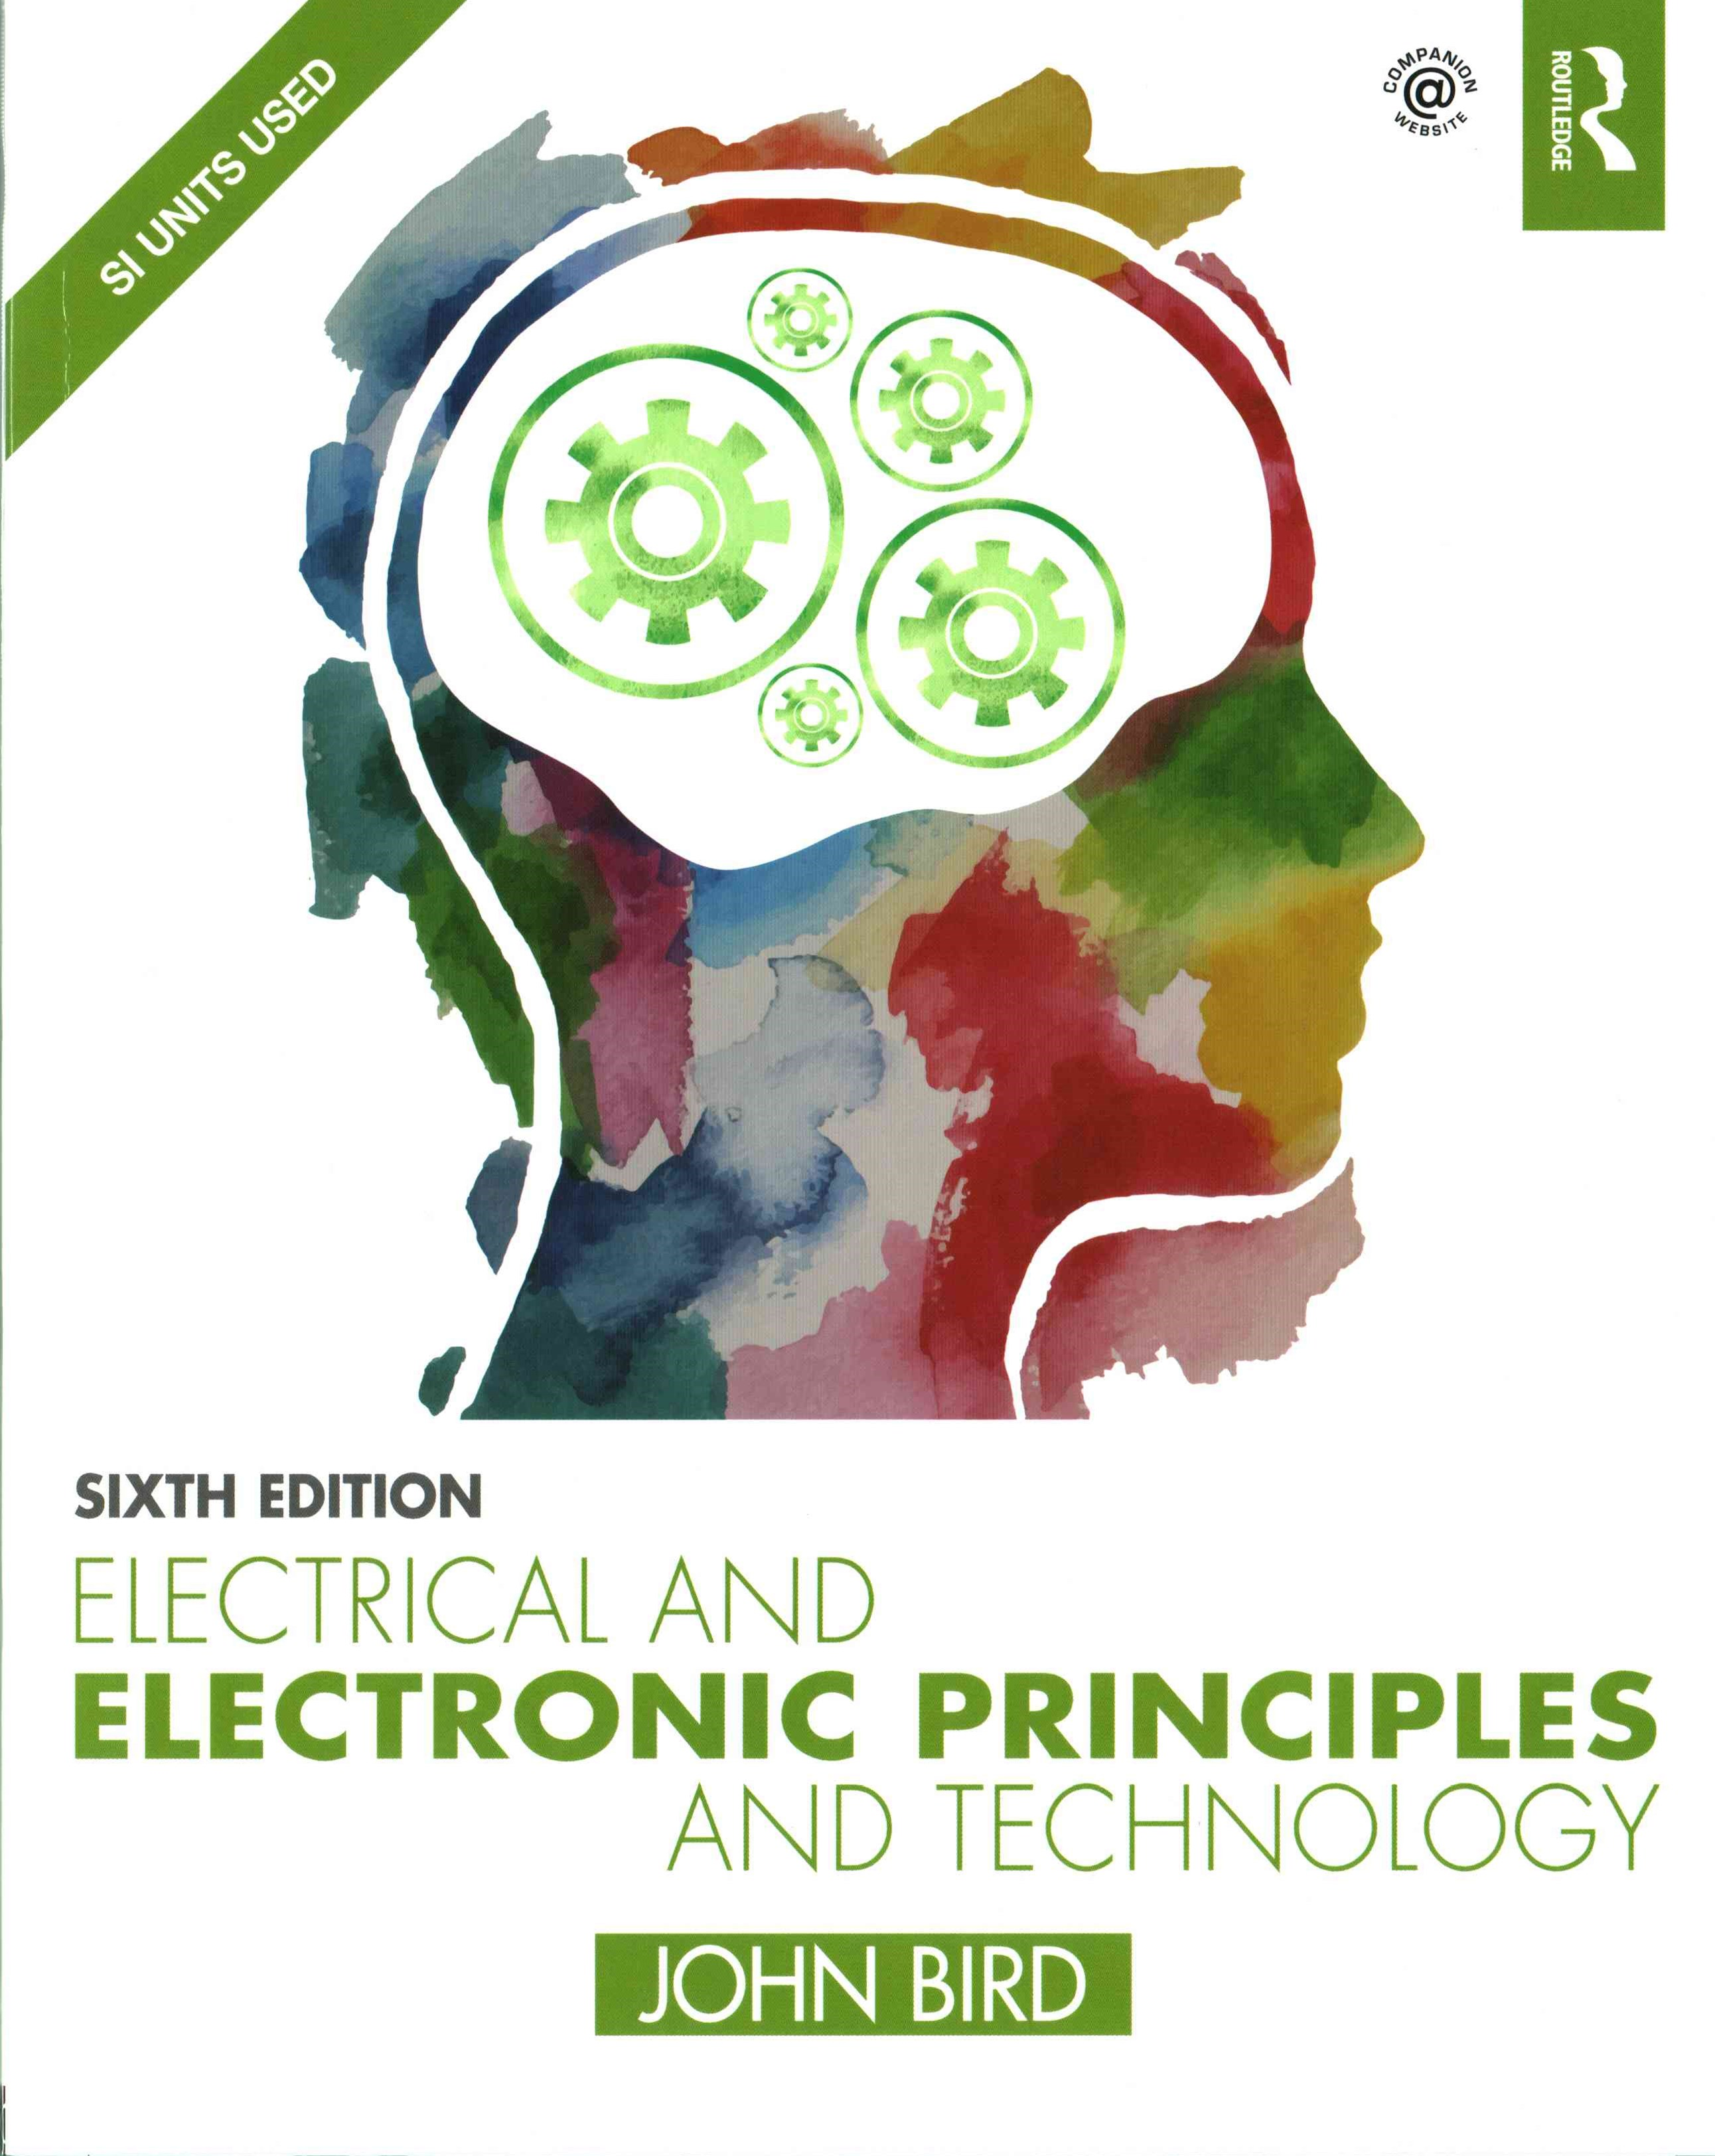 Electrical and Electronic Principles and Technology, 6th Ed